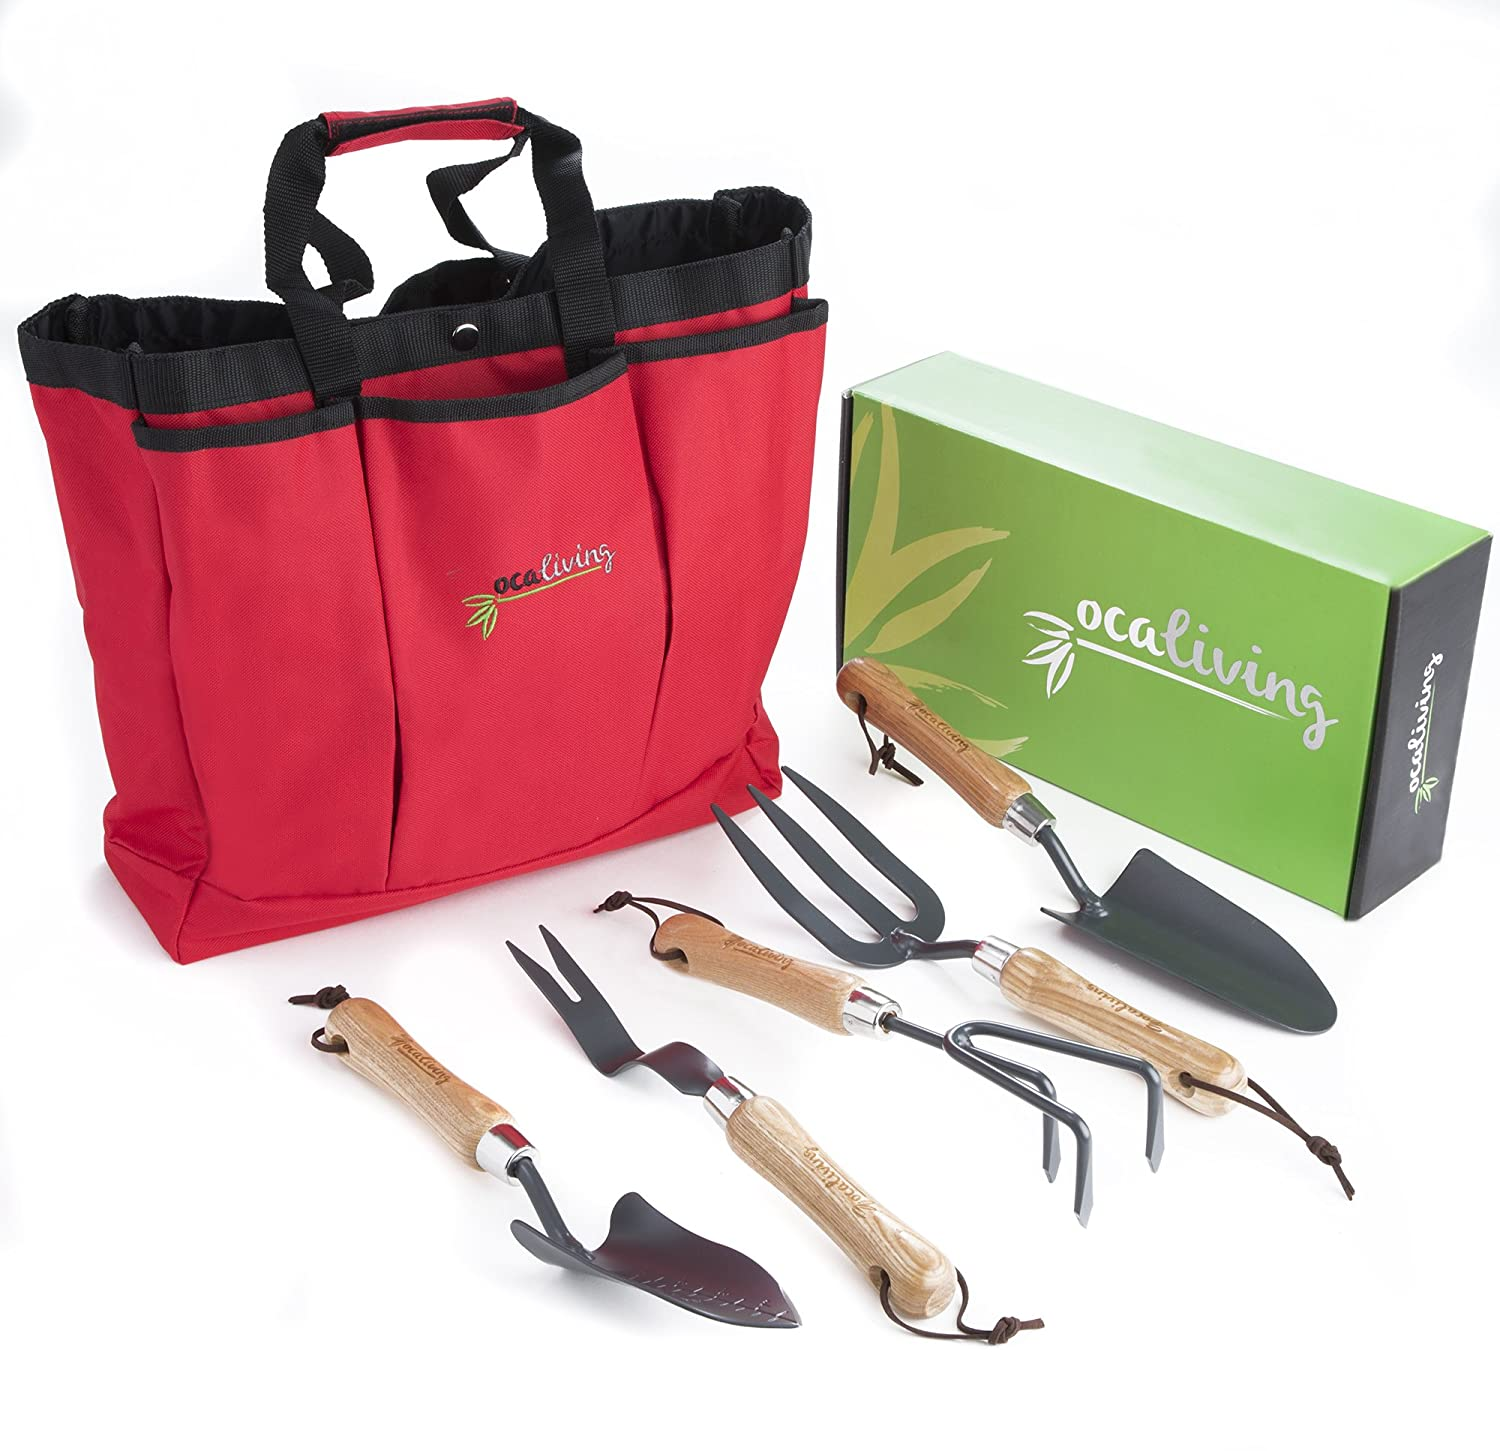 OCALIVING Gorgeous, 6-Piece Garden Hand Tool Set inc. Cherry Red, Weather-Resistant Storage Bag – Gardening and Planting Essentials – Sharp, Steel Planter Accessories with Ergonomic Ash Wood Handles